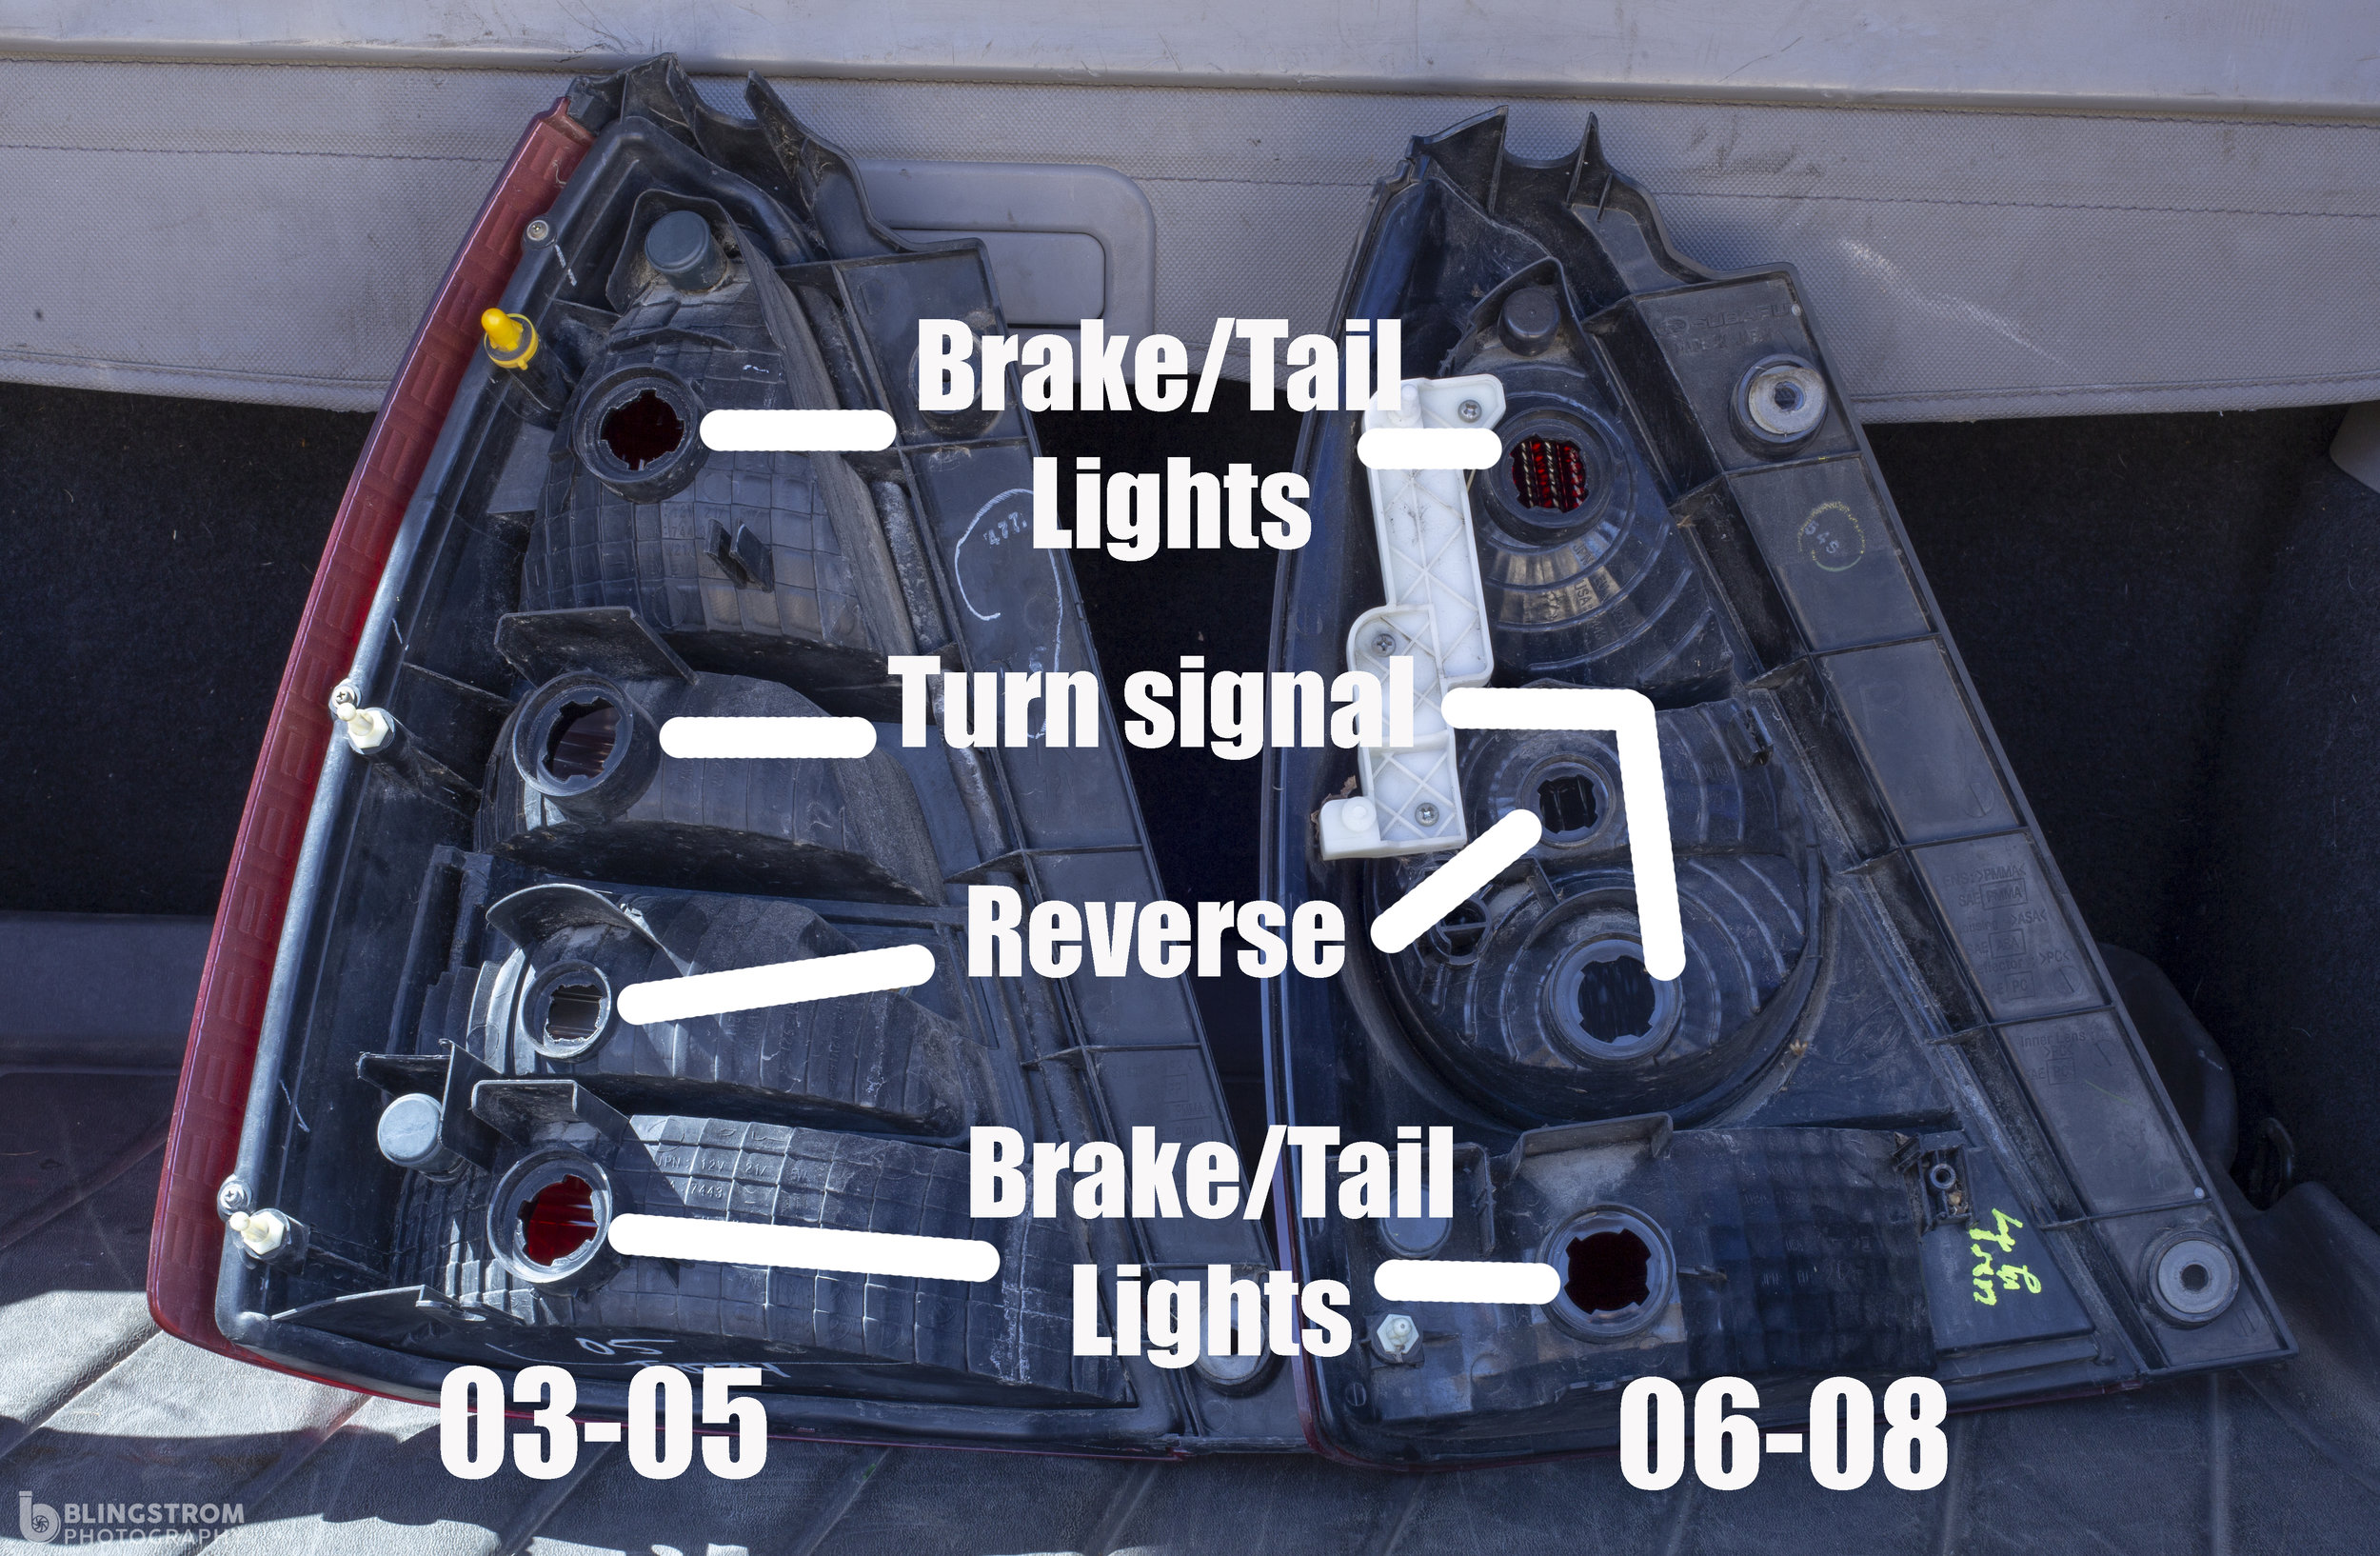 The reverse light and turn signal swap places in between the two tail lights.